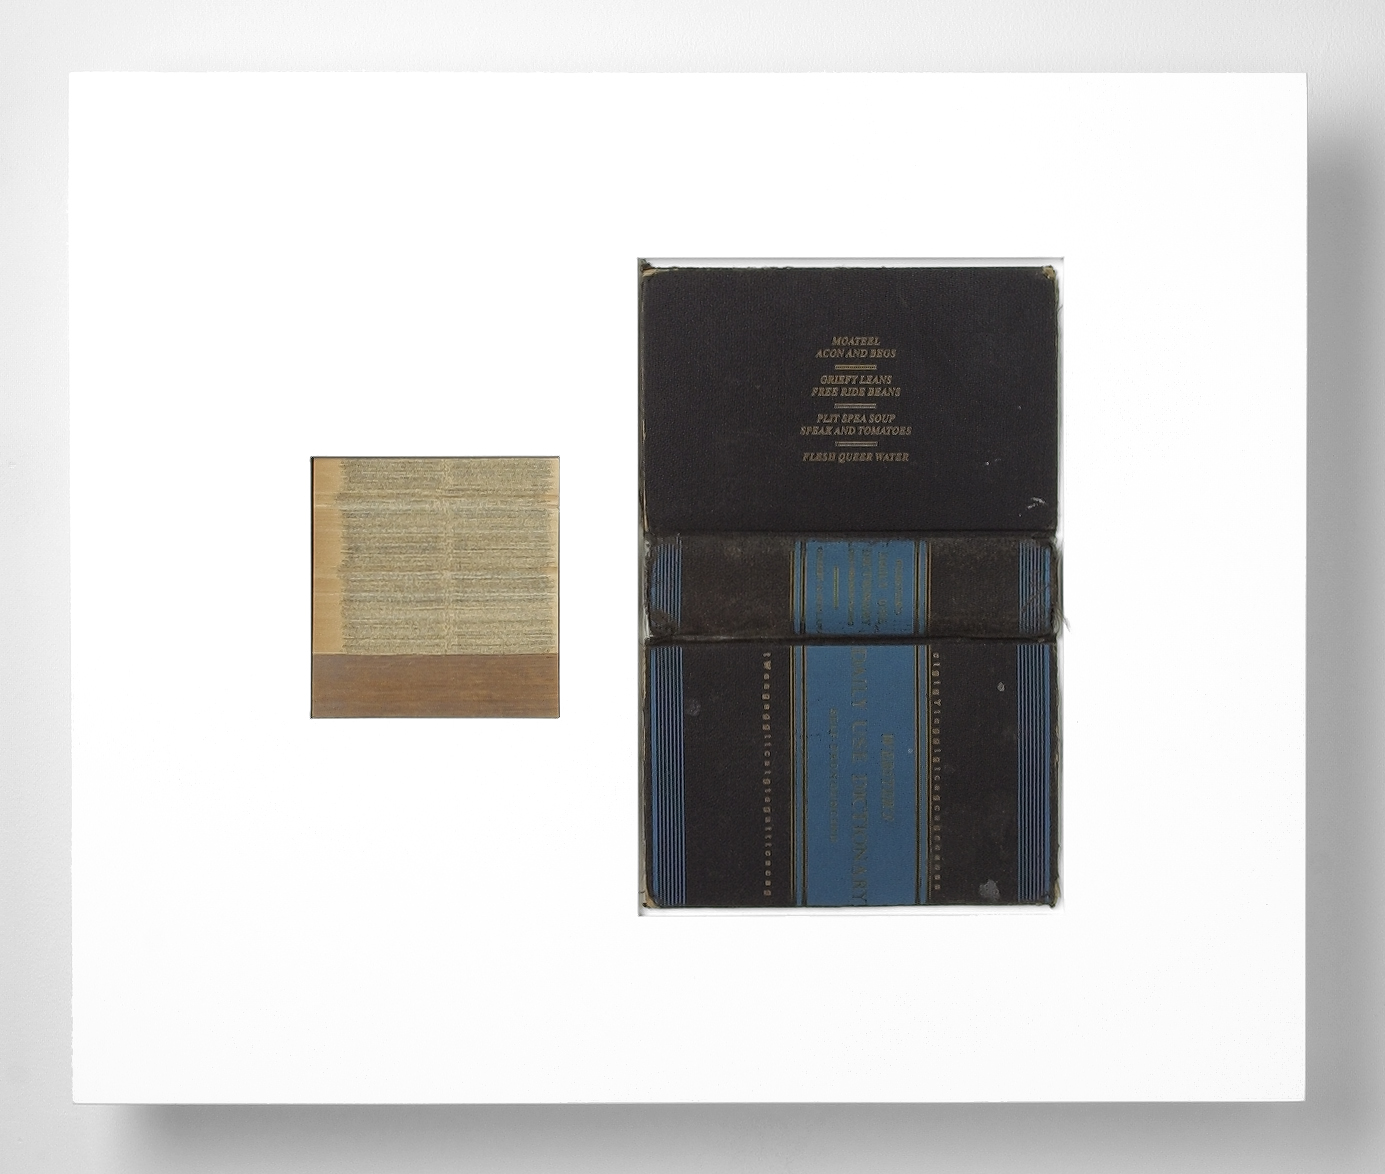 SNPs/slips (15) , laser engraved dictionary cover, pages, in lacquered frame, 20 x 24 x 2.75 inches, 2003